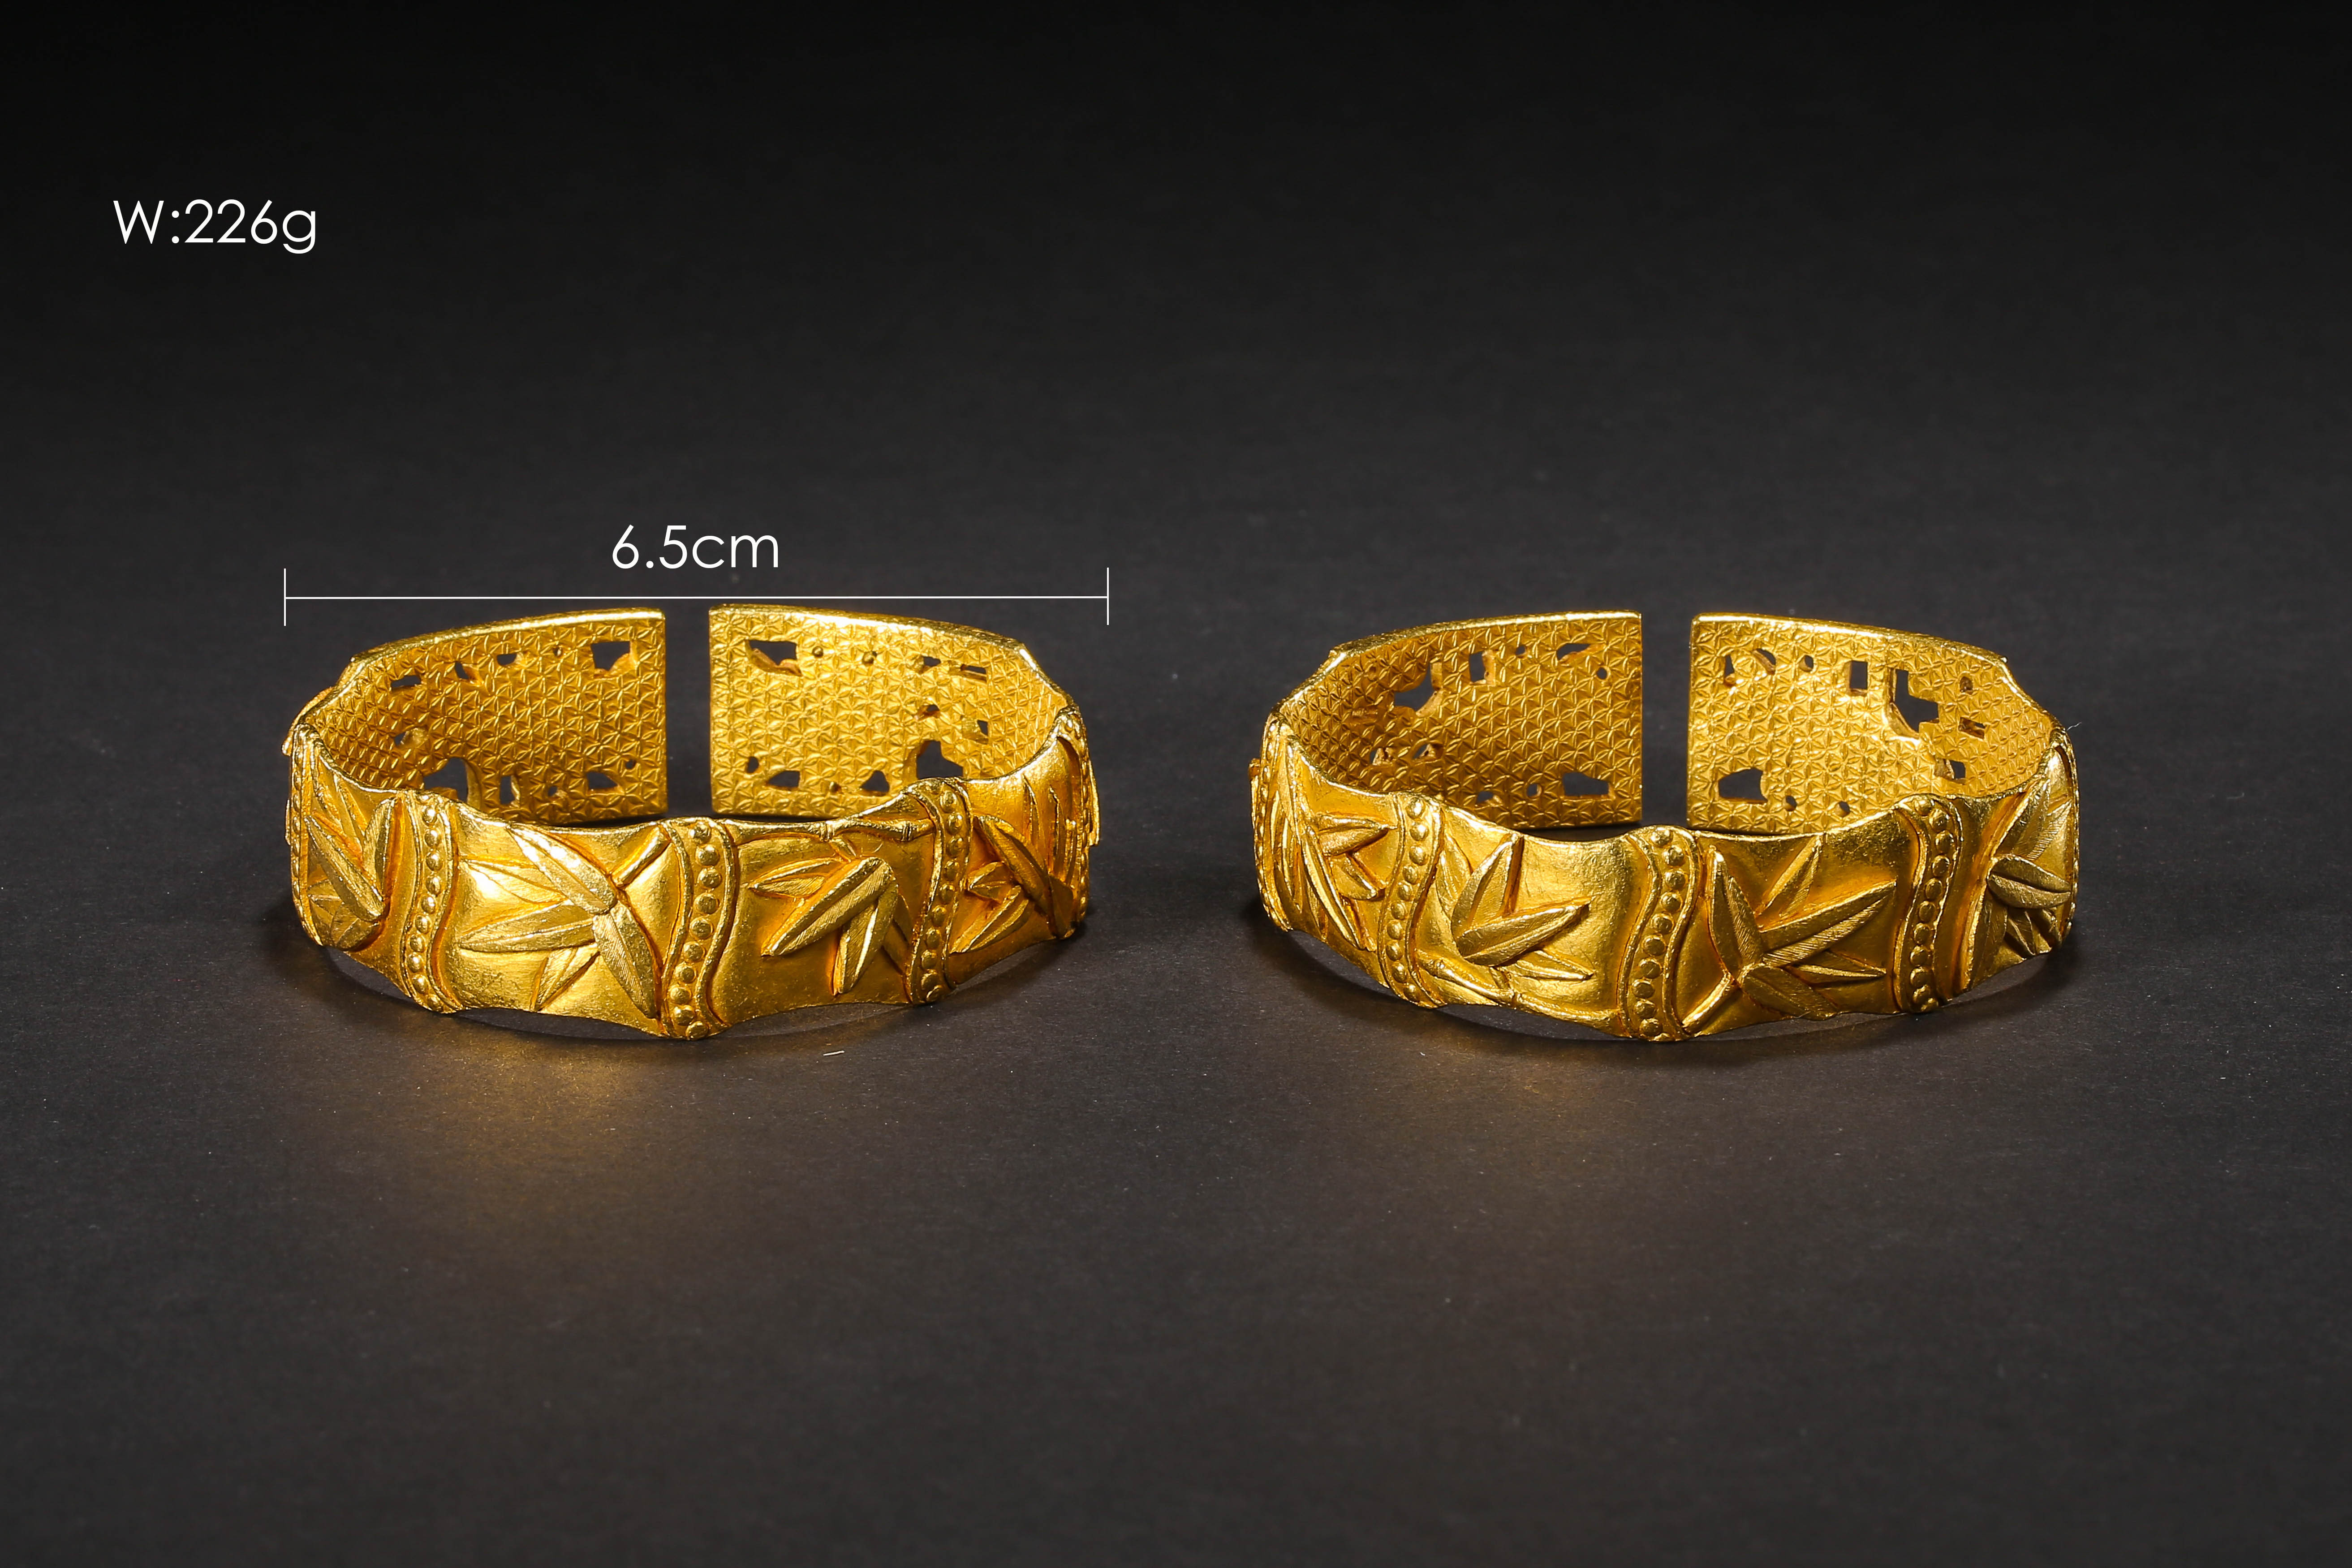 A PAIR OF PURE GOLD BRACELETS, QING DYNASTY, CHINA - Image 2 of 11